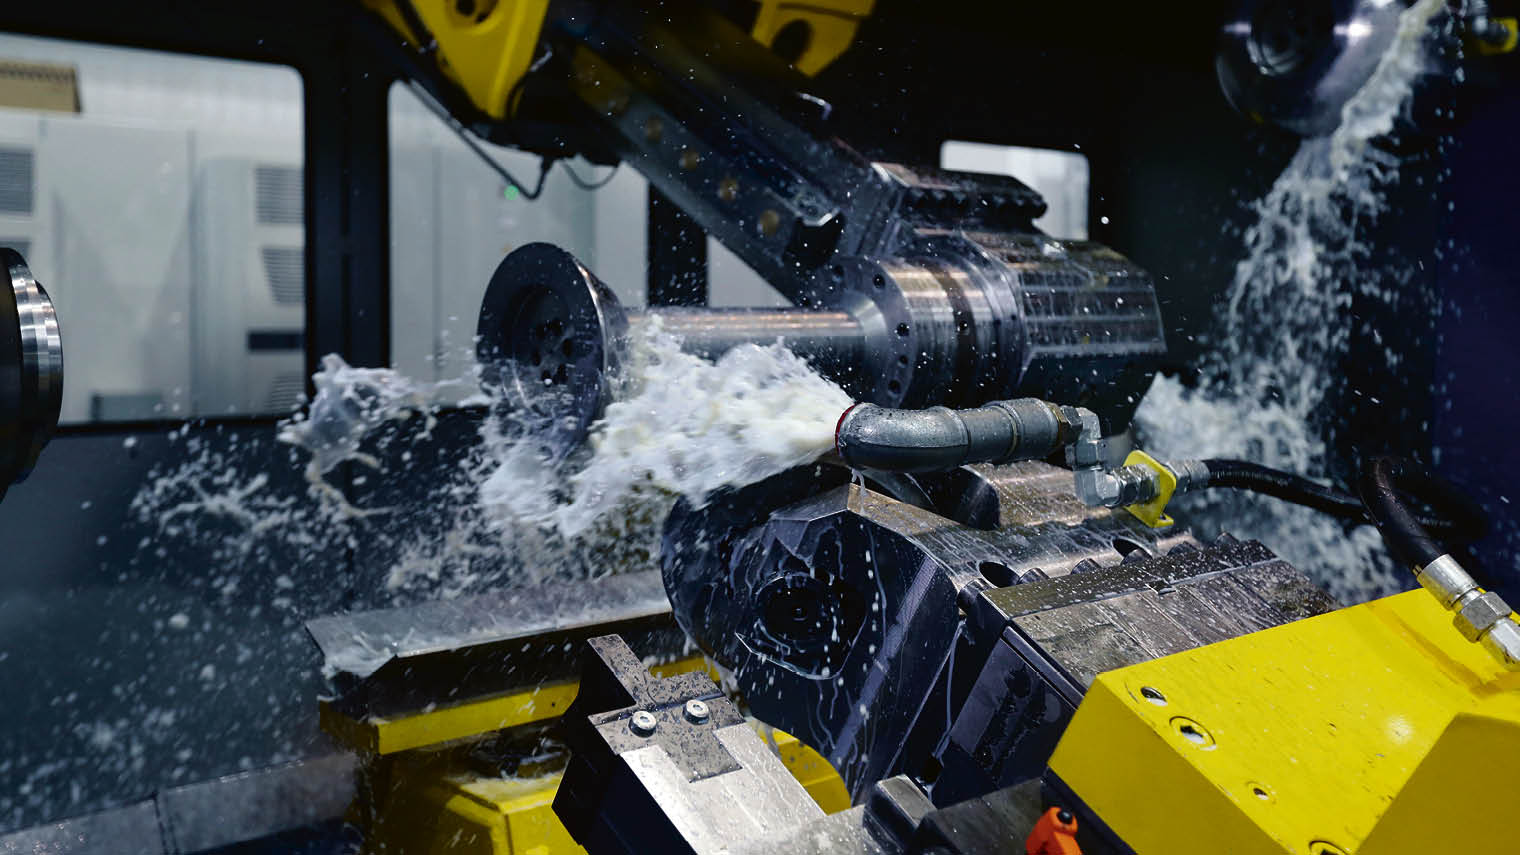 Flowformer at the Advanced Forming Research Centre in Glasgow, part of the High Value Manufacturing Catapult